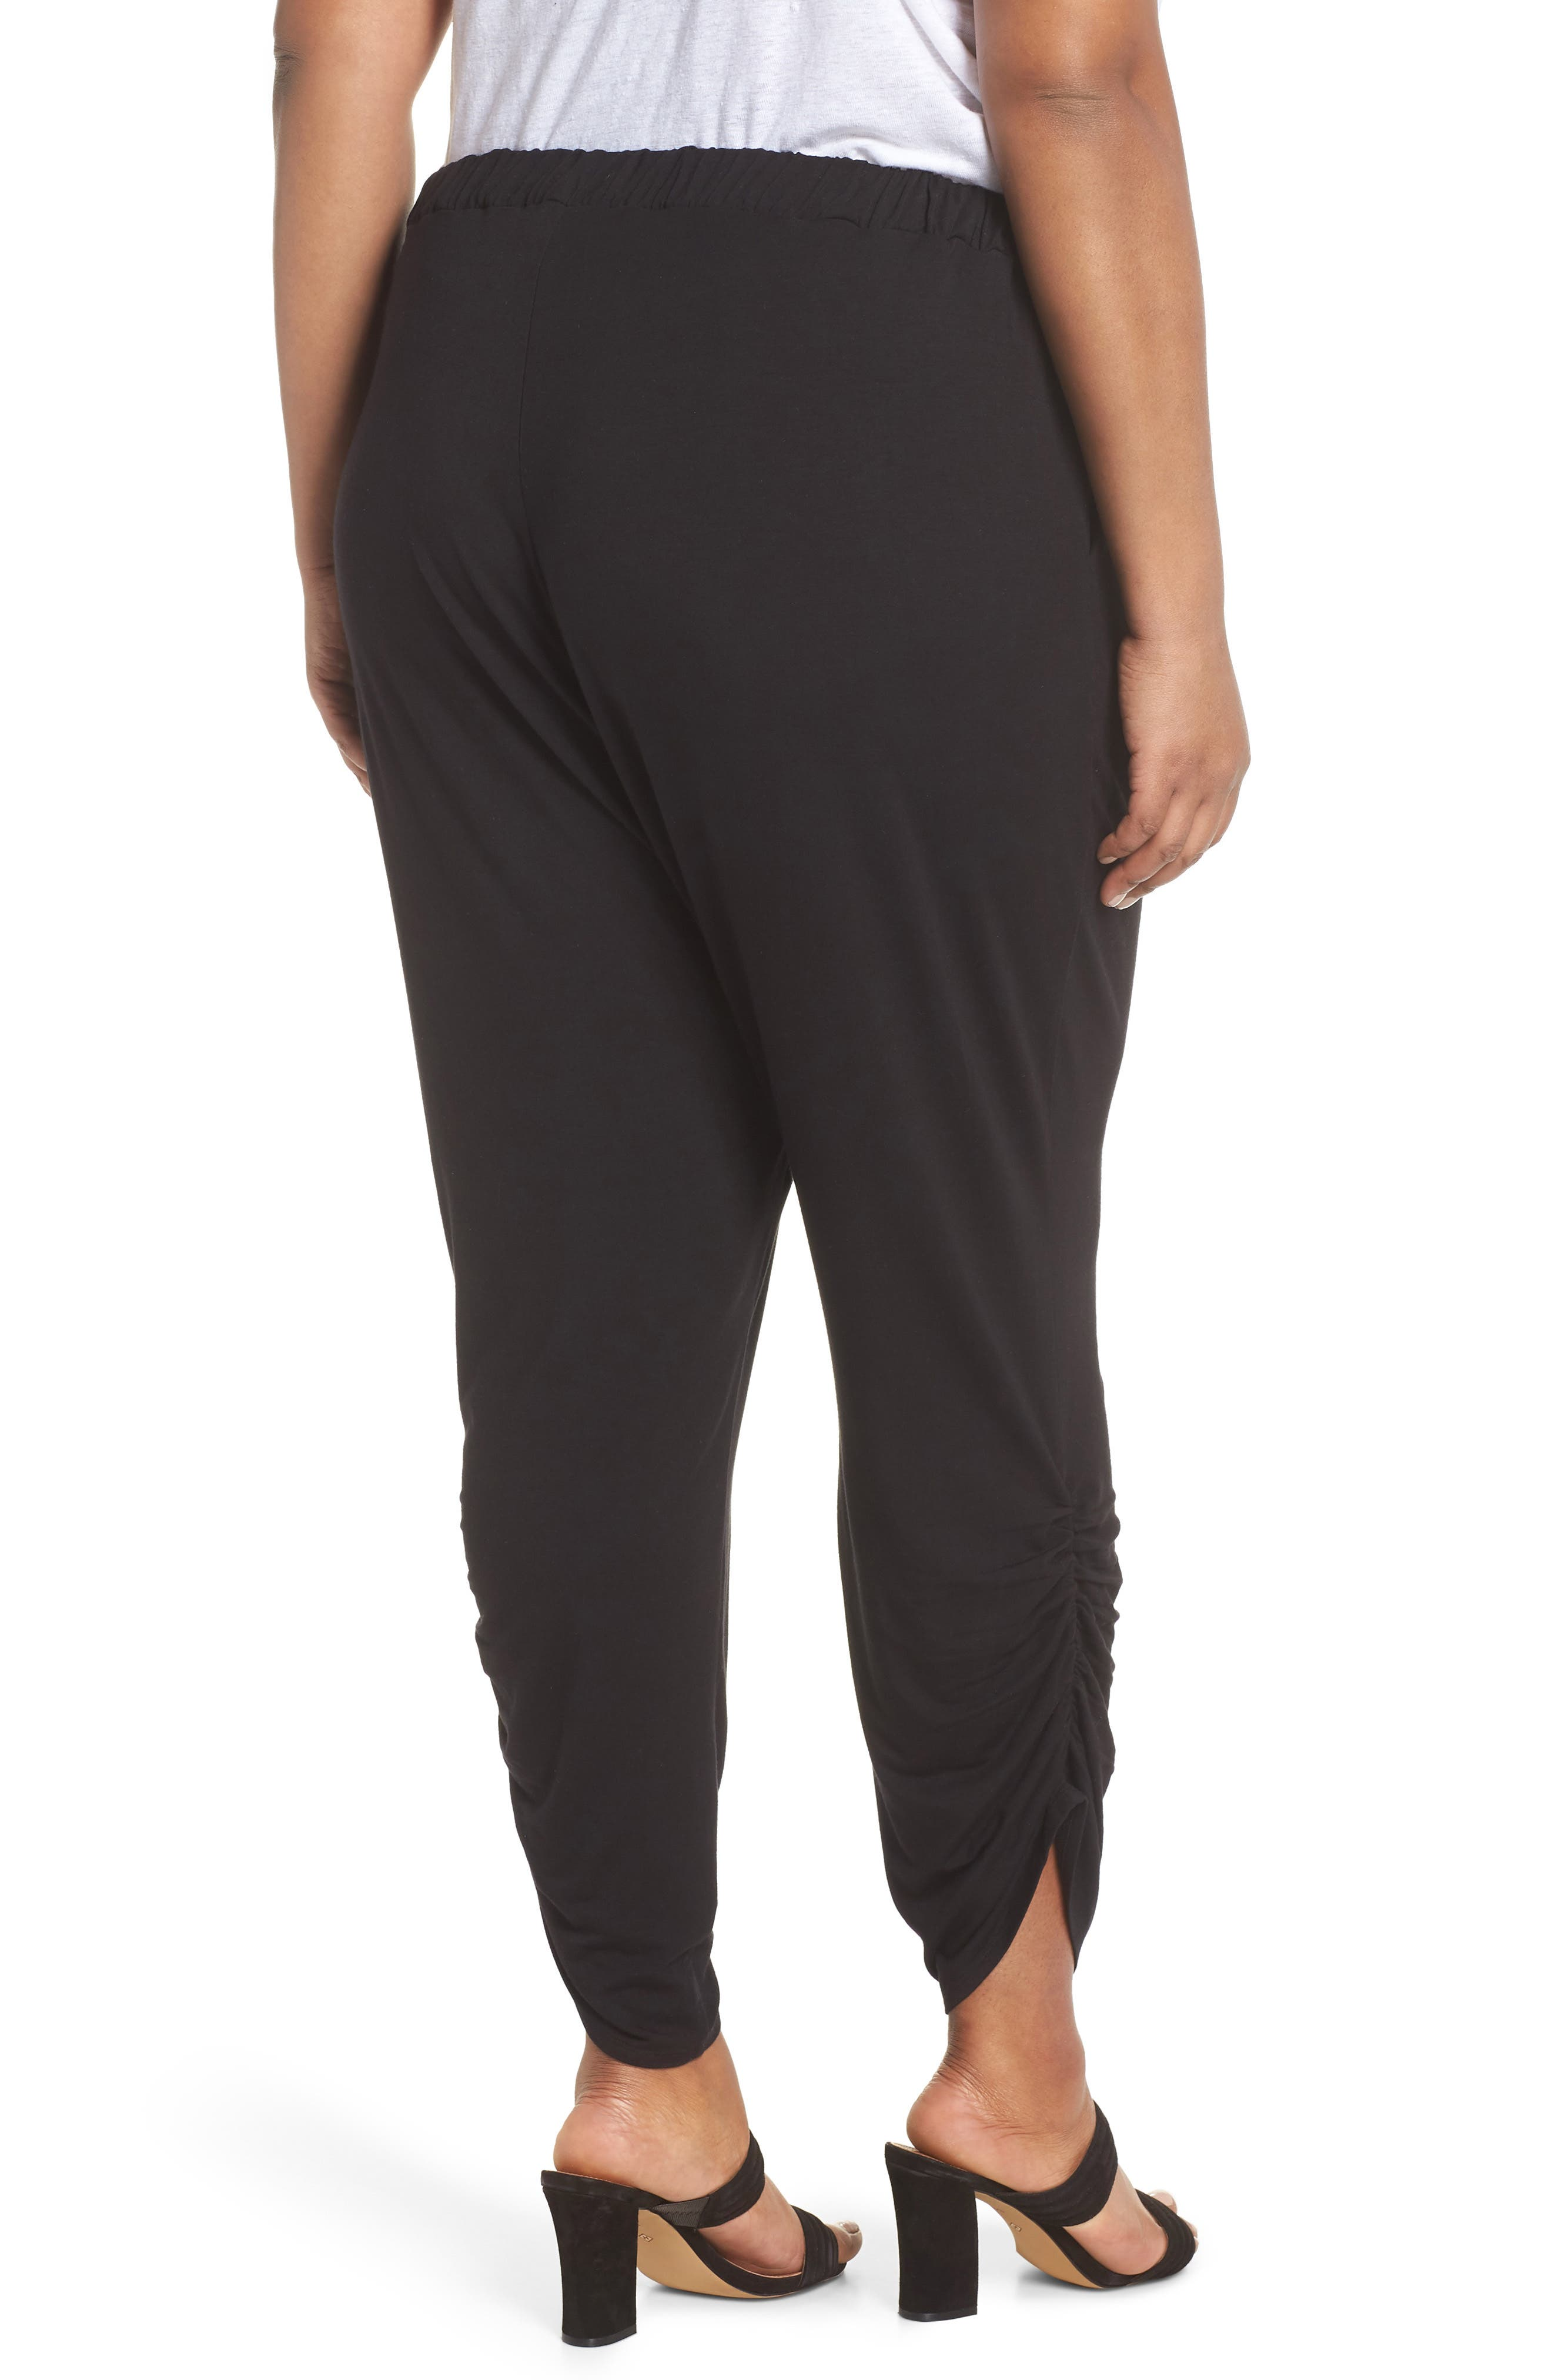 Cinch Hem Harem Pants,                             Alternate thumbnail 2, color,                             001